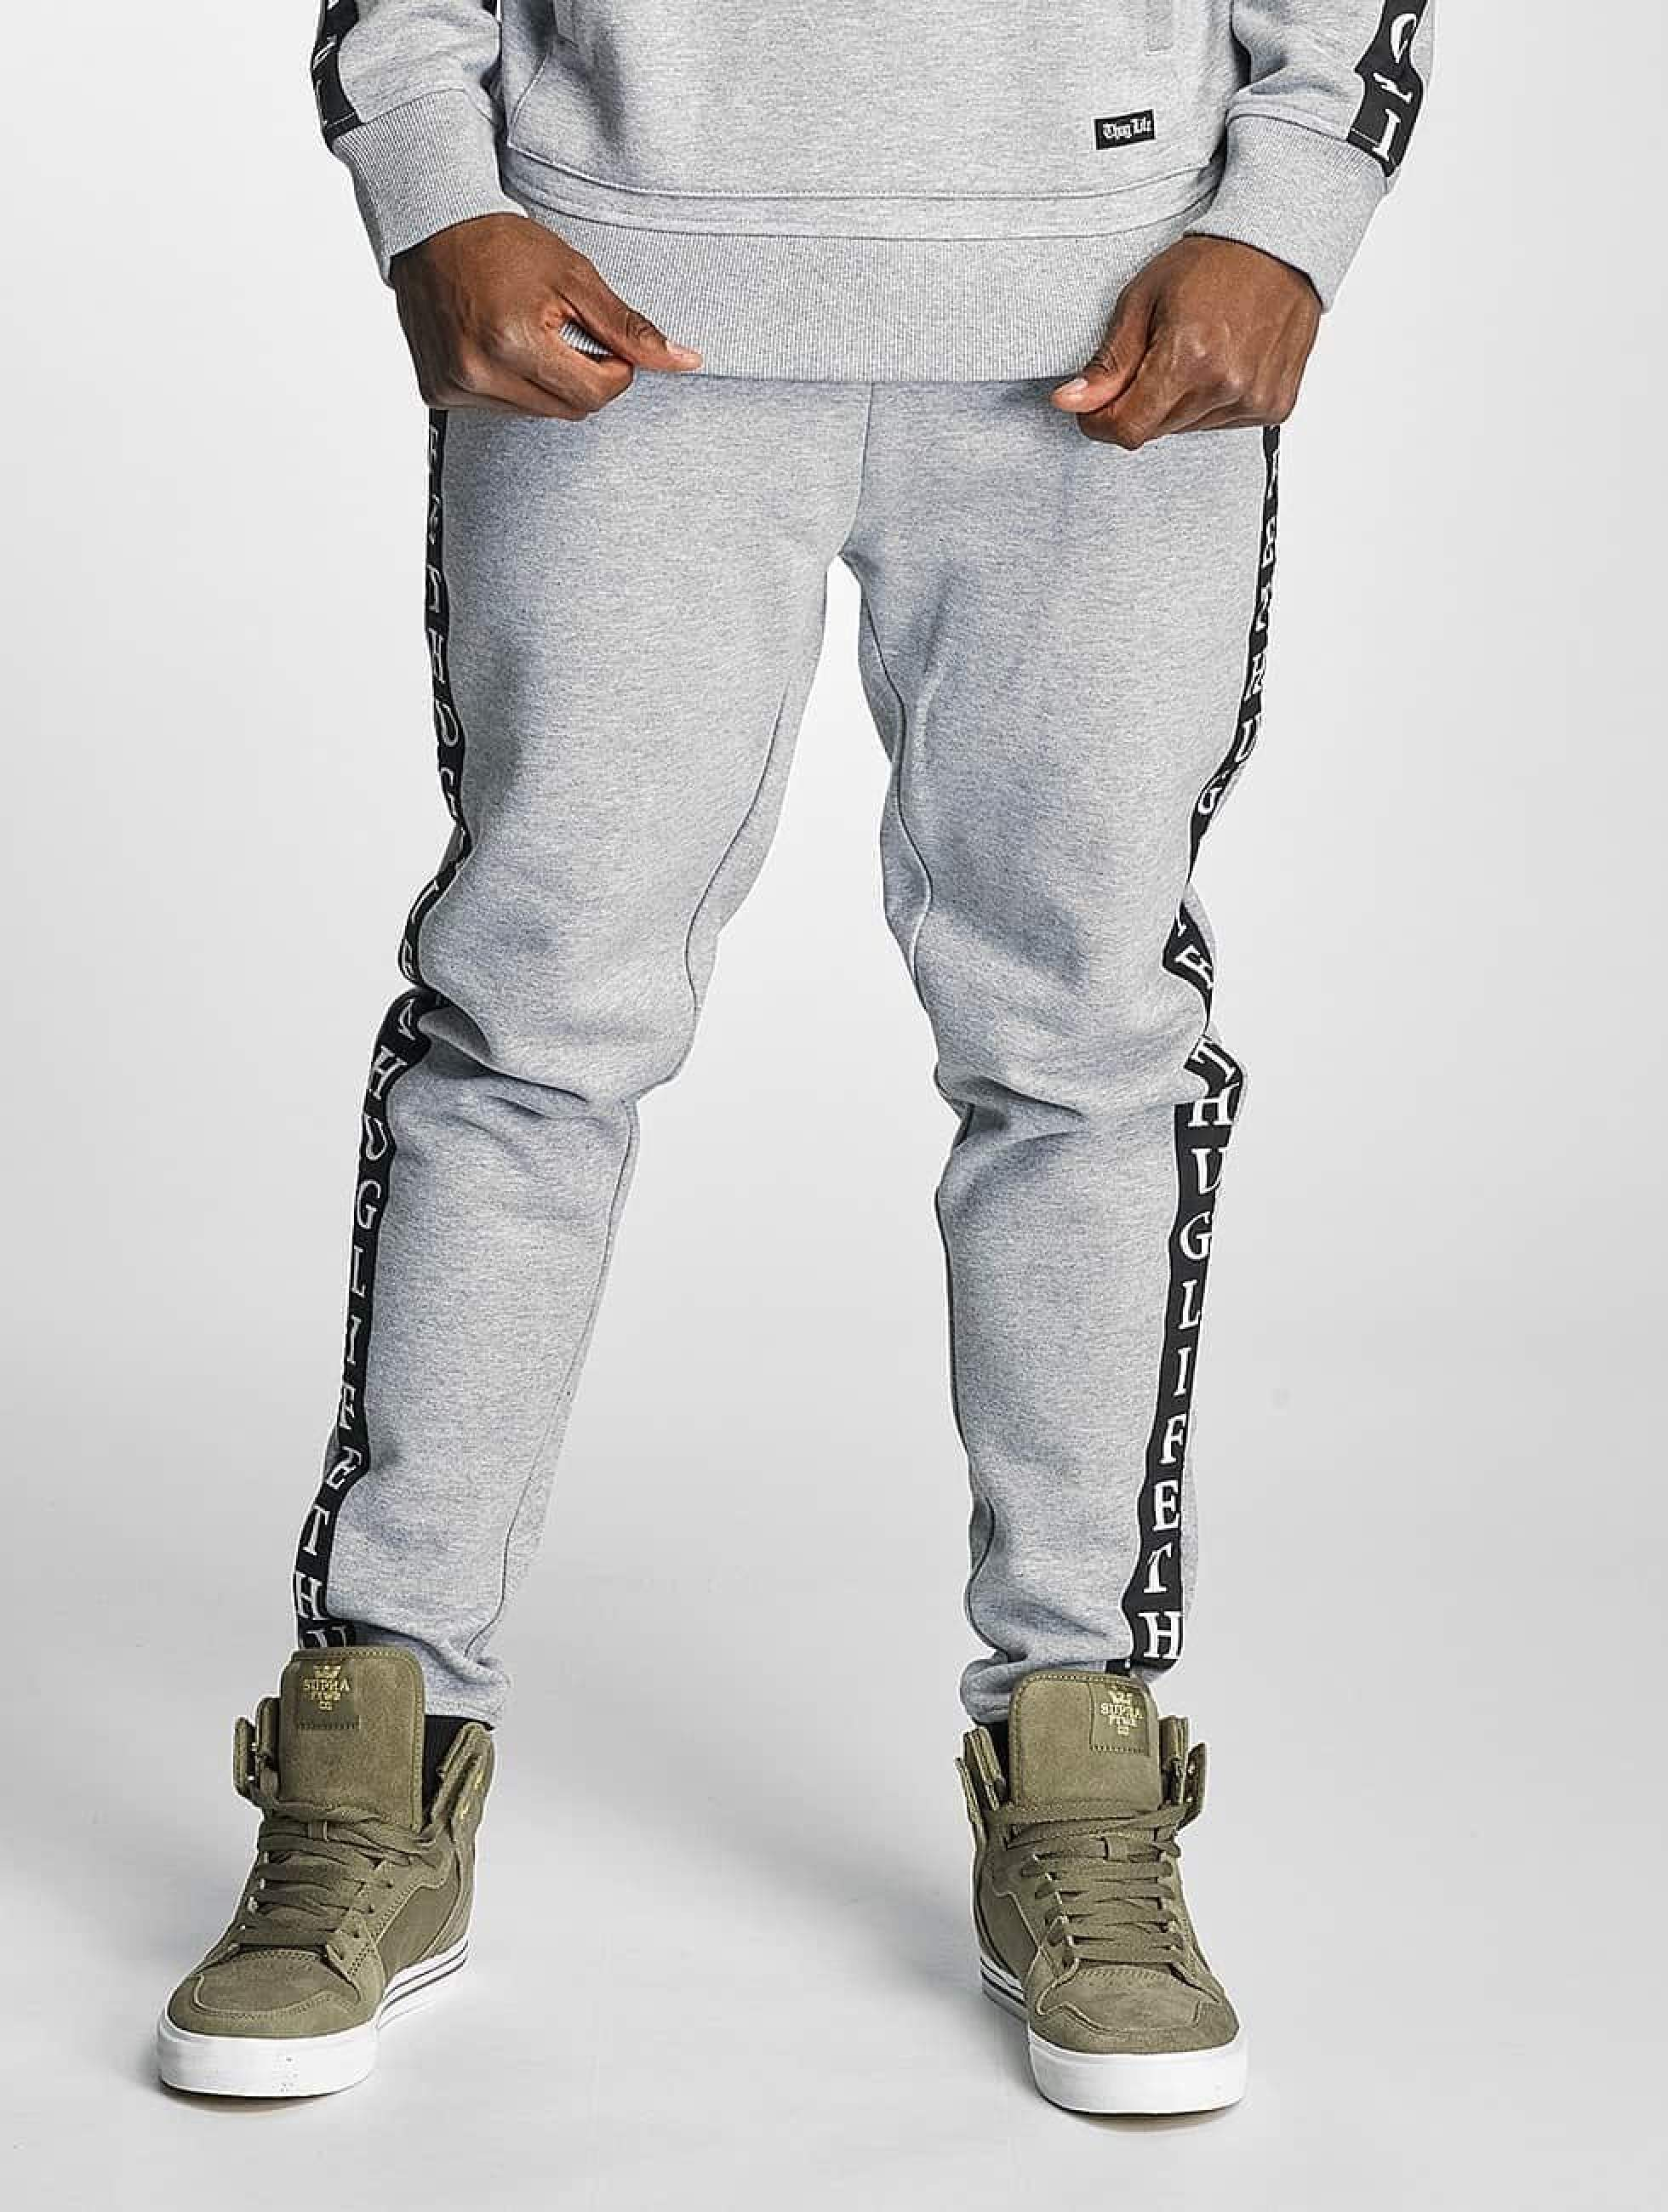 Thug Life / Sweat Pant Wired in grey L